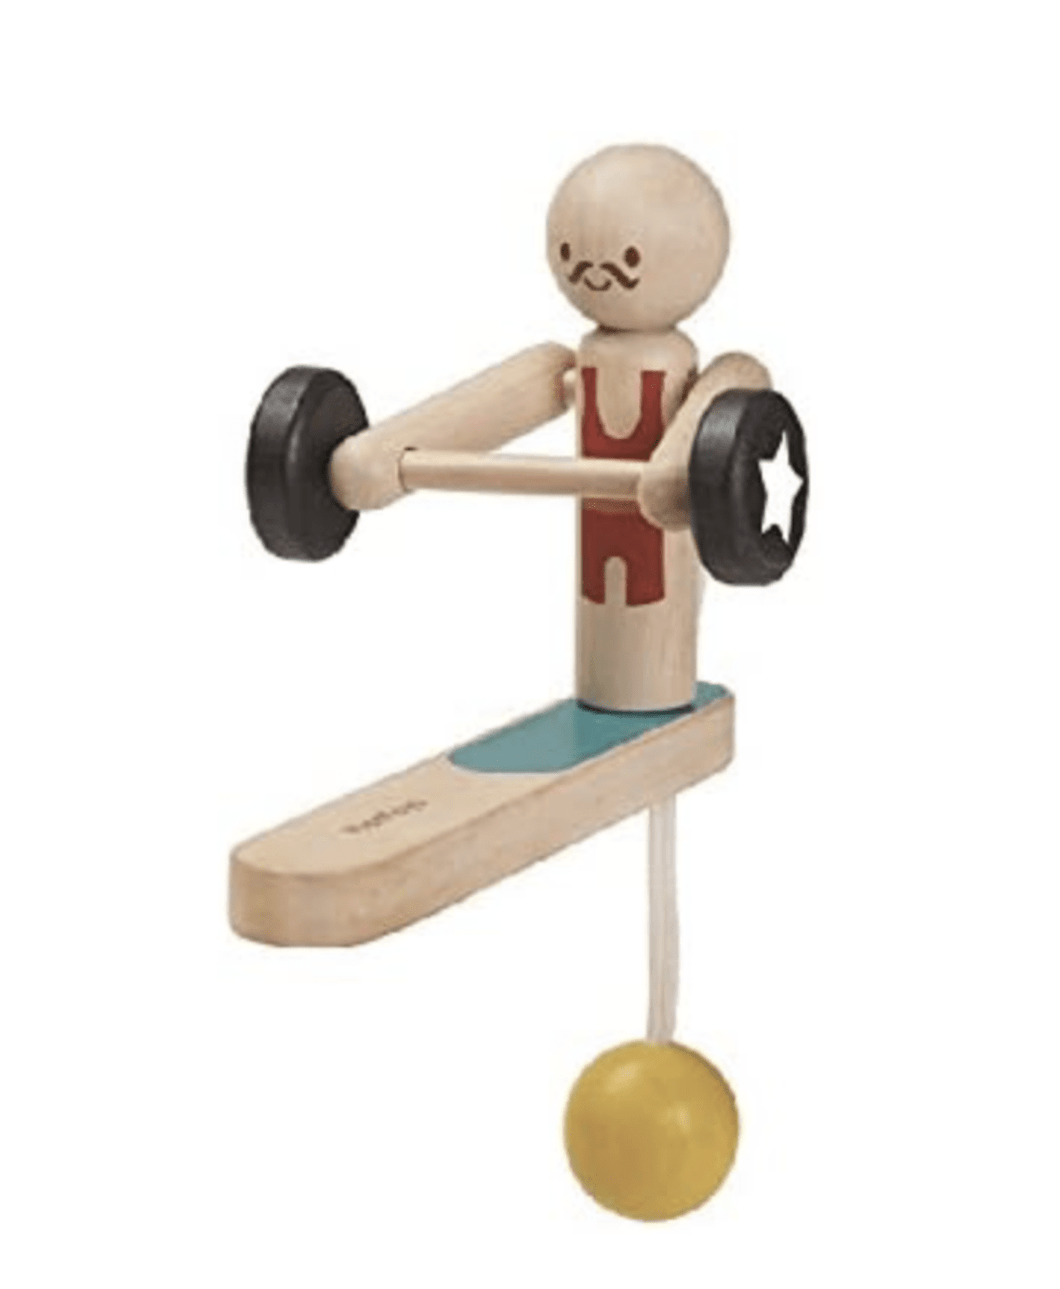 Weightlifting Acrobat - Make Me Yours Toy Studio